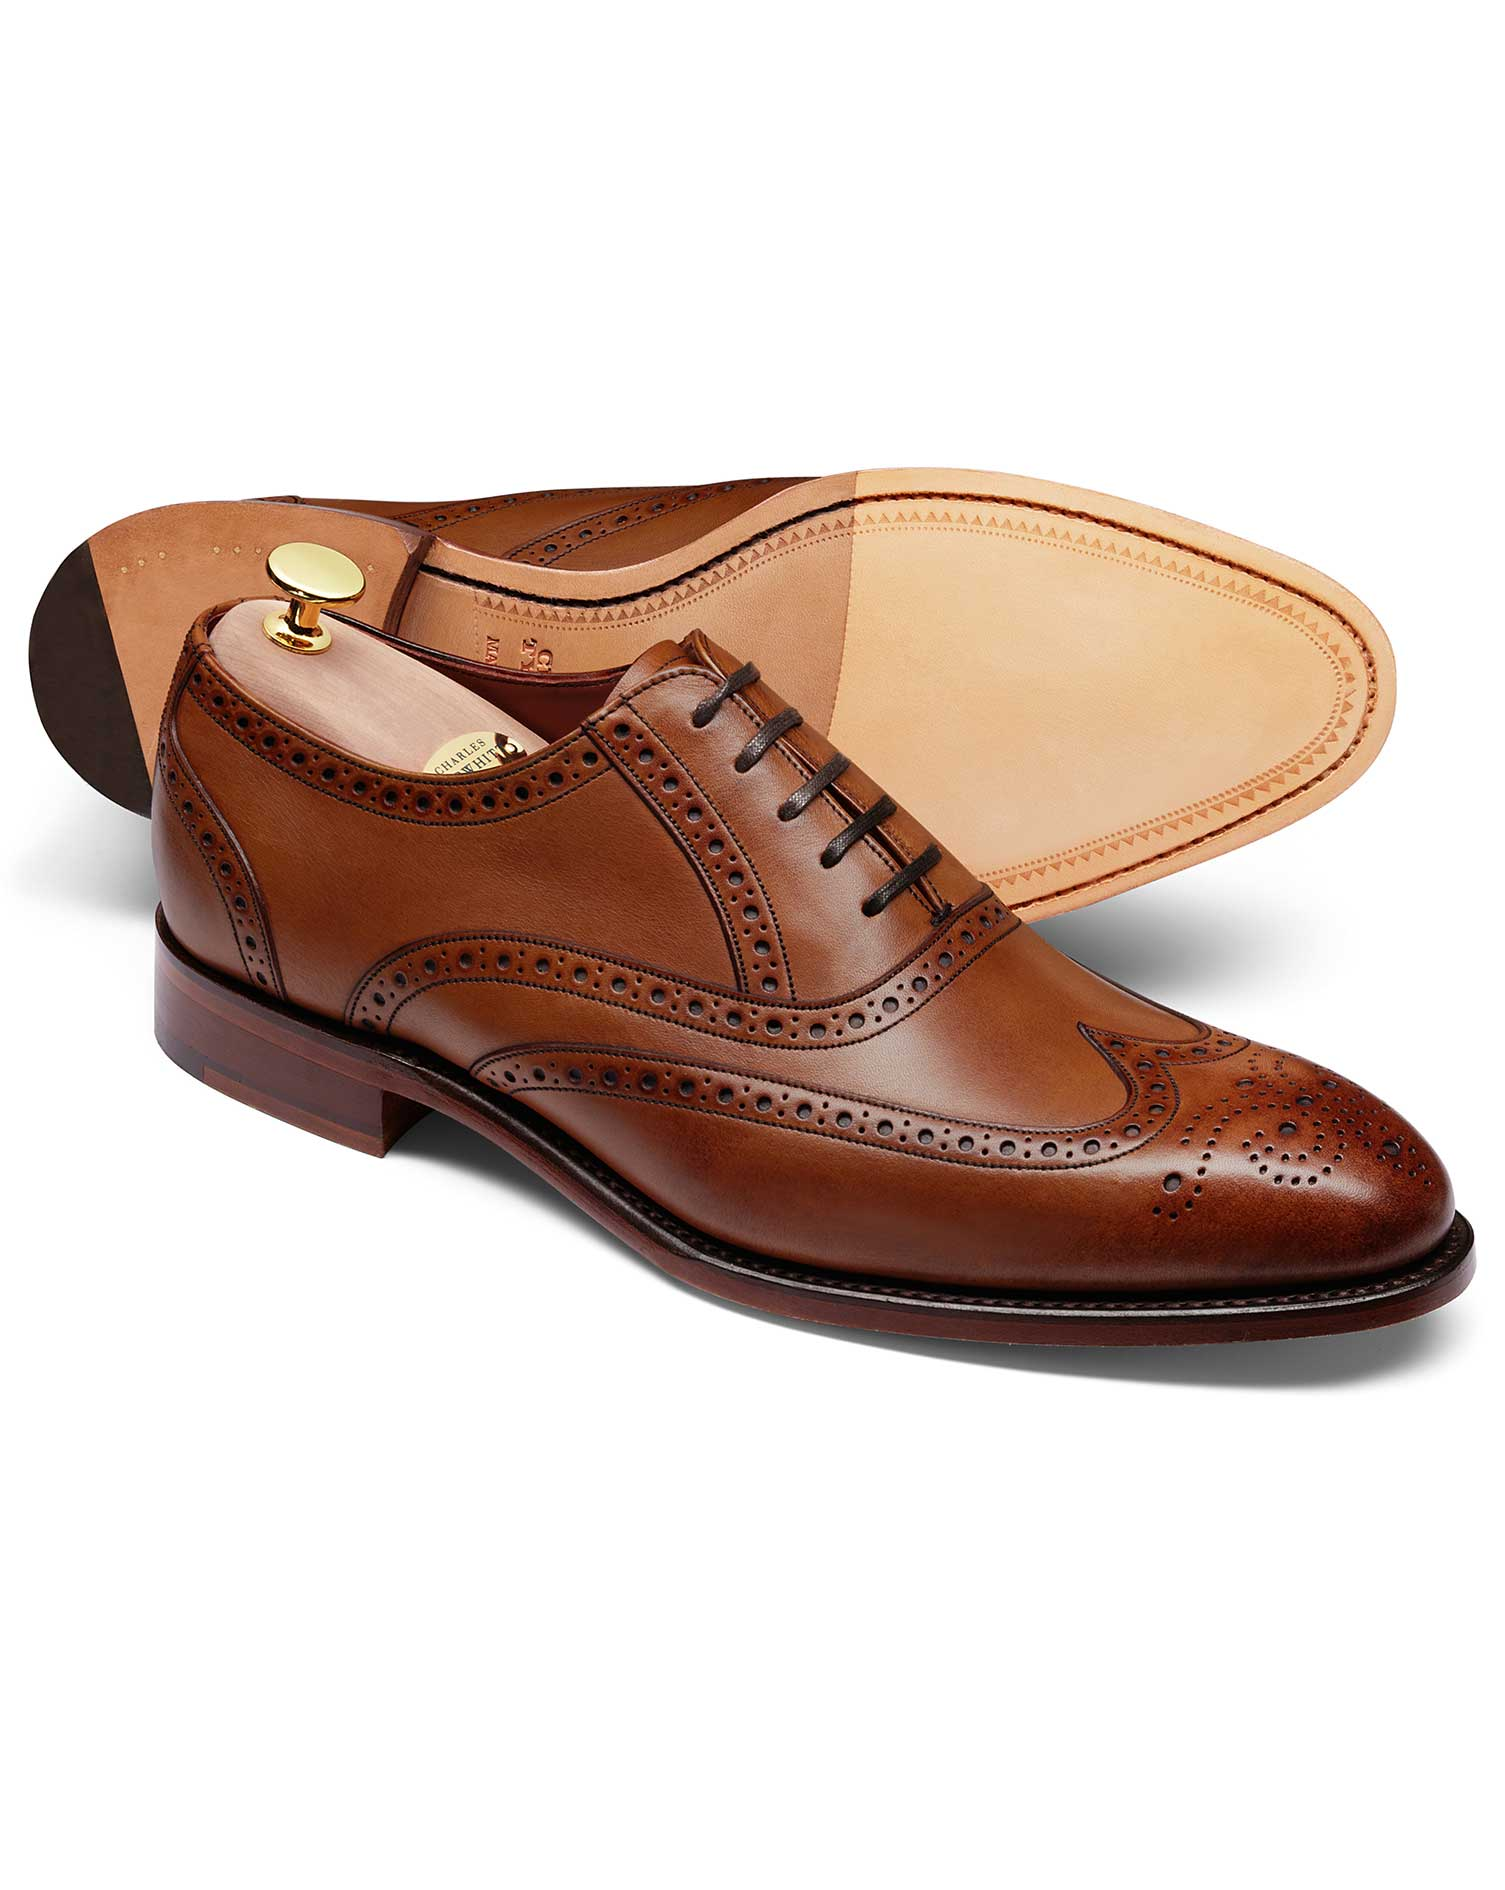 Chestnut Made In England Oxford Brogue Shoe Size 10.5 R by Charles Tyrwhitt